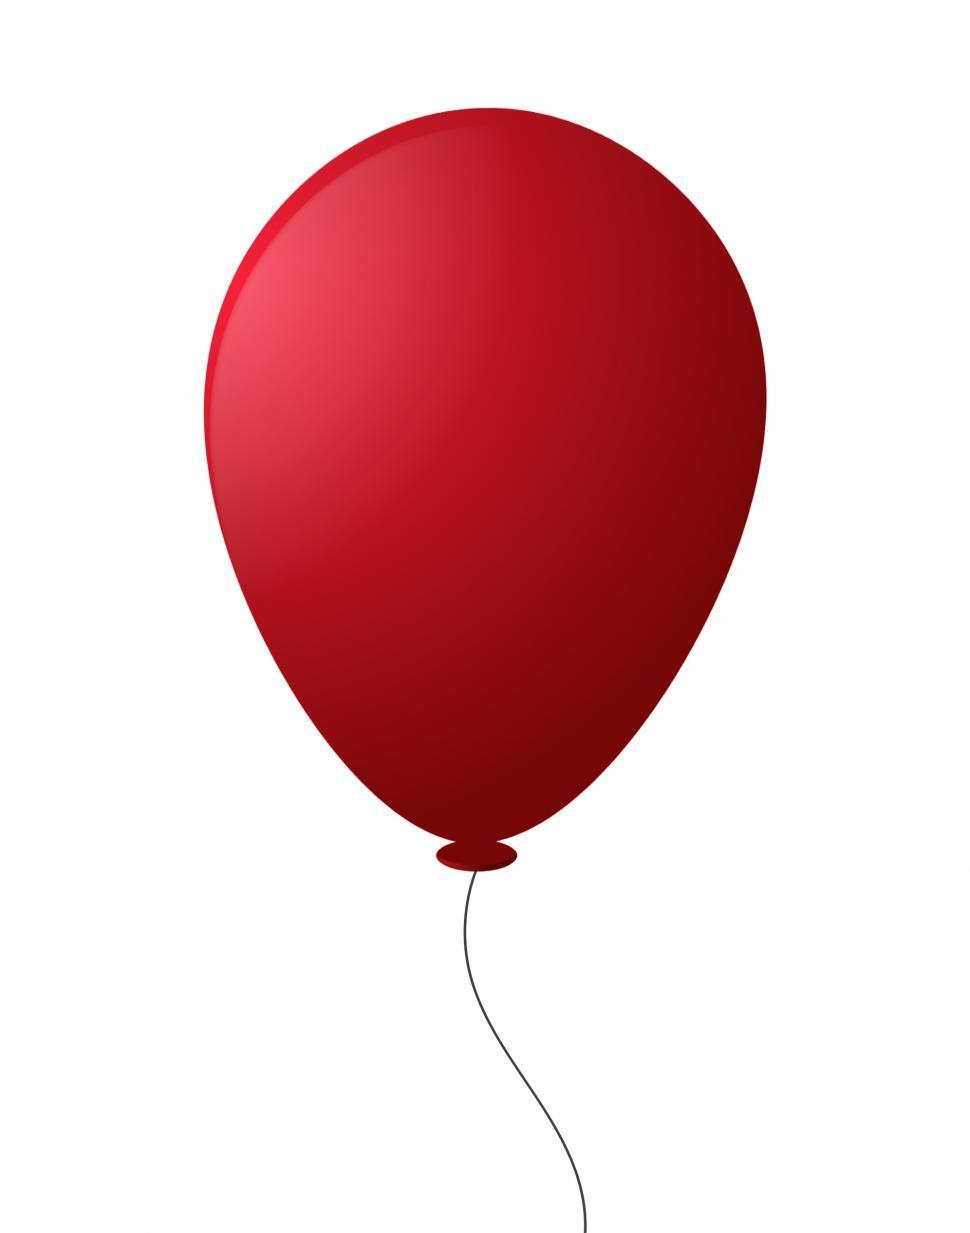 Download Free Stock Photo of Red Balloon